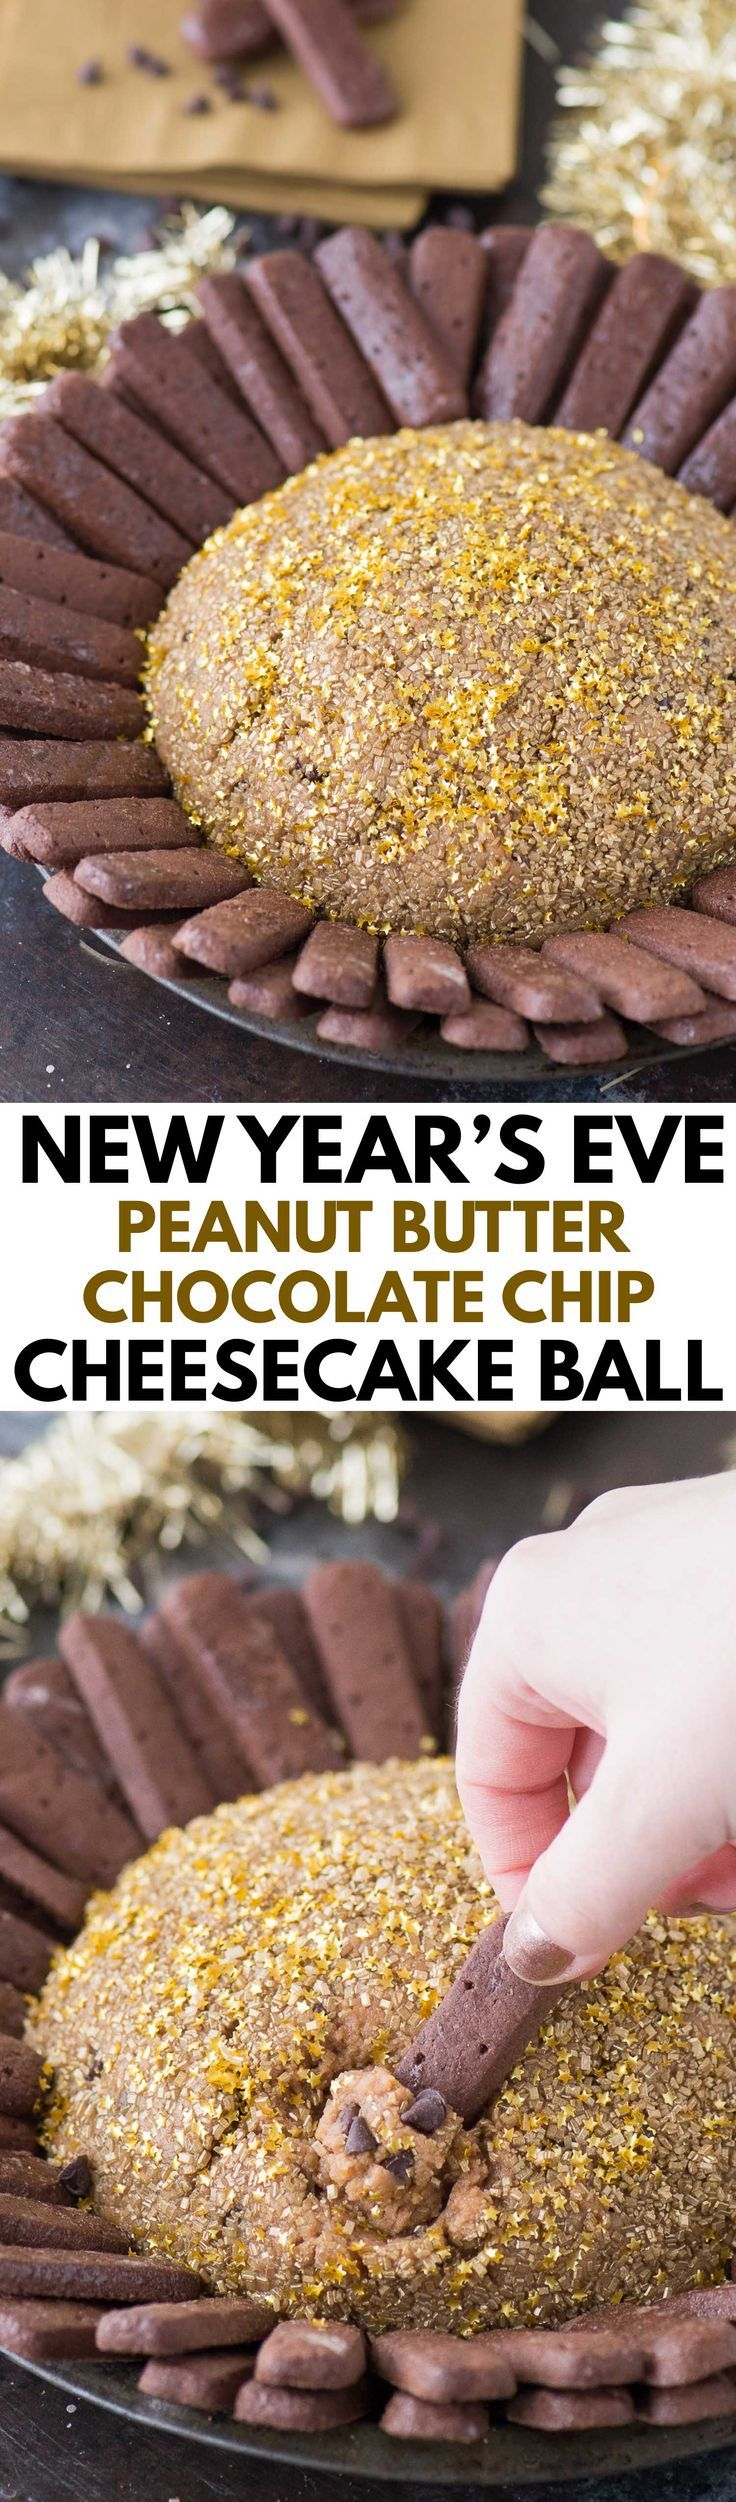 657 best Chocolate & Peanut Butter Recipes! images on Pinterest ...